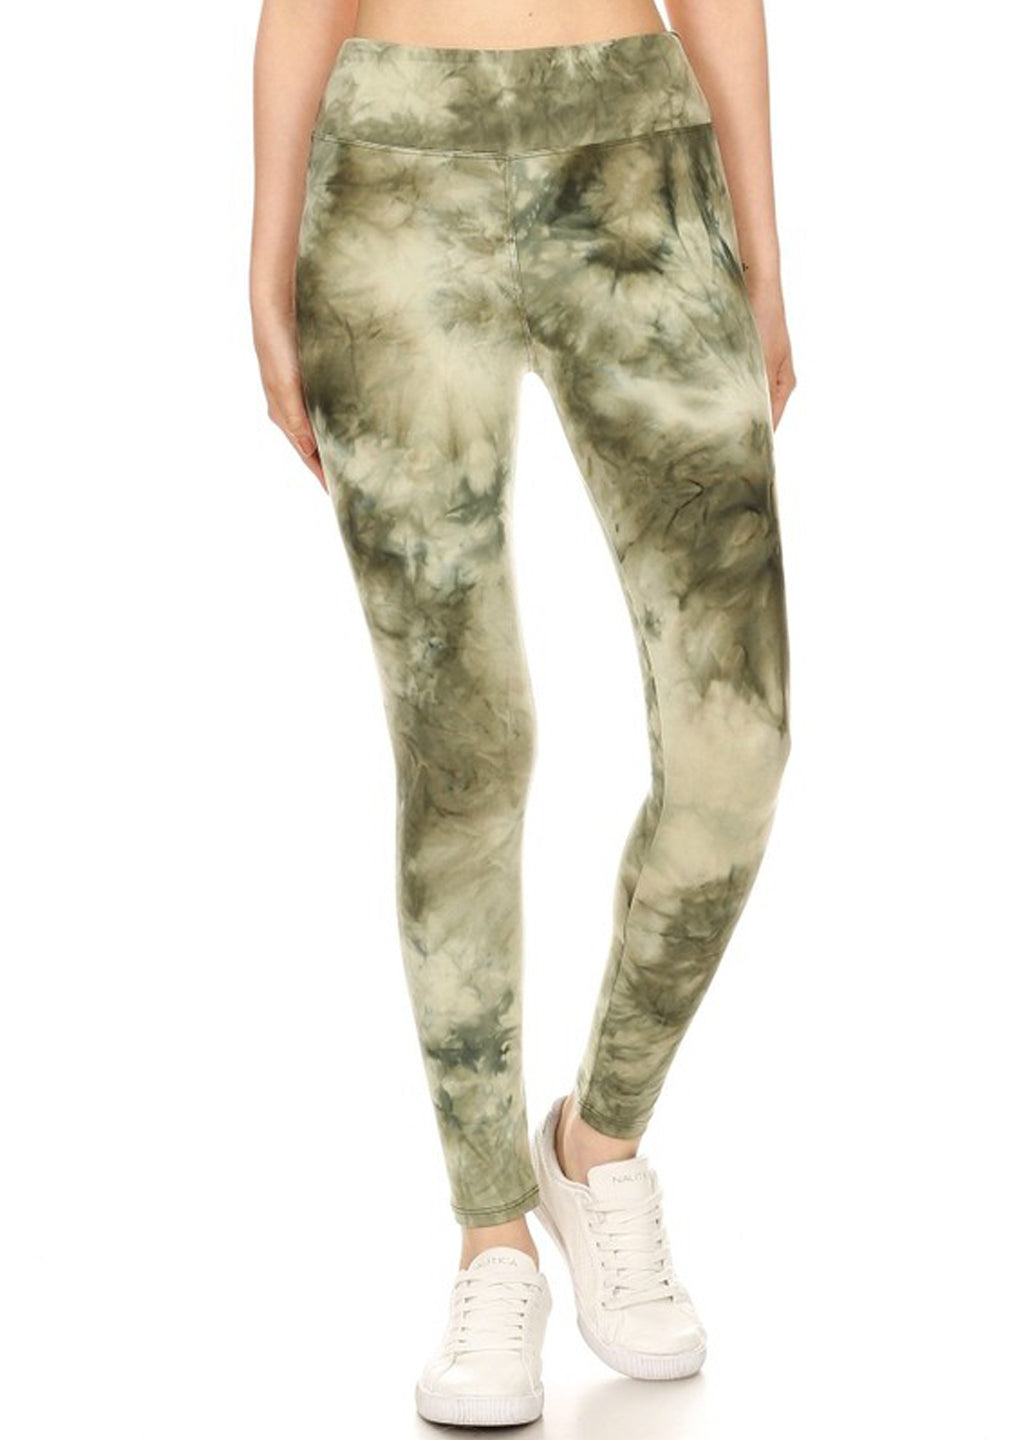 Green Tie Dye Yoga Leggings